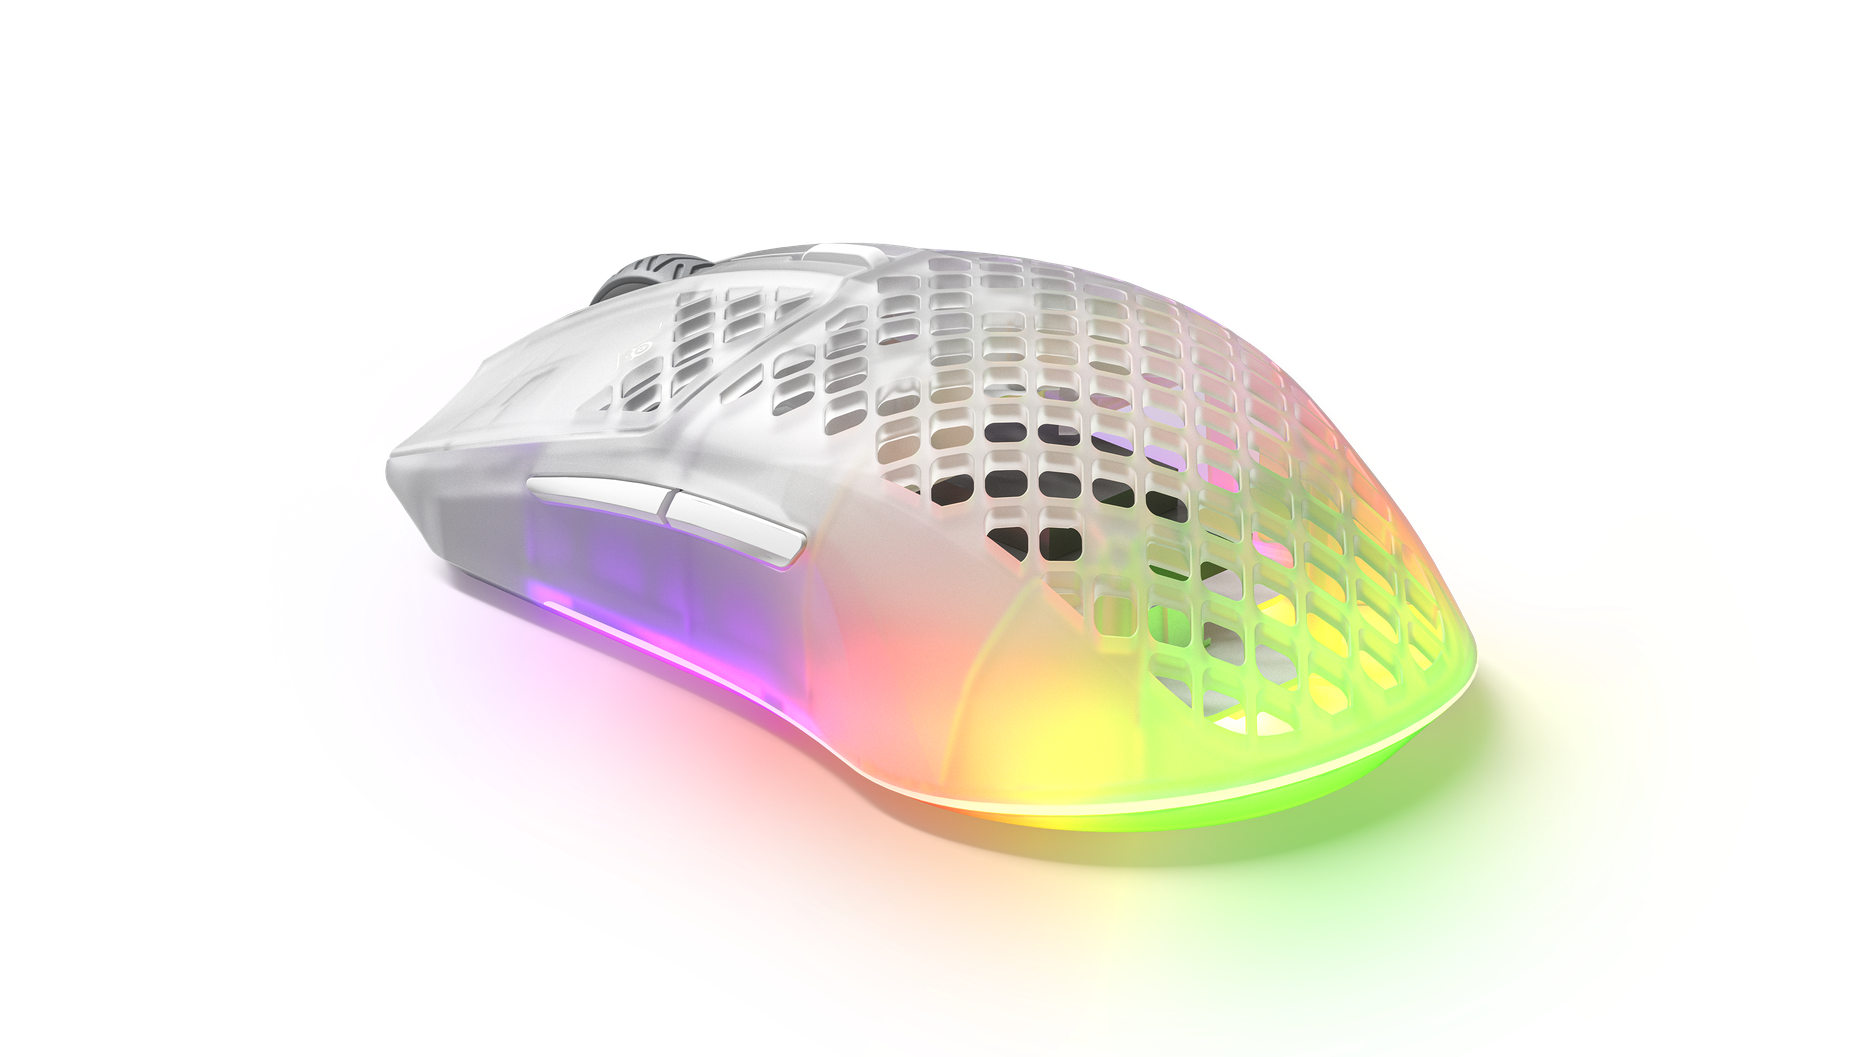 Angled view of the Aerox 3 Wireless mouse, showing off the sleek and lightweight holey design.